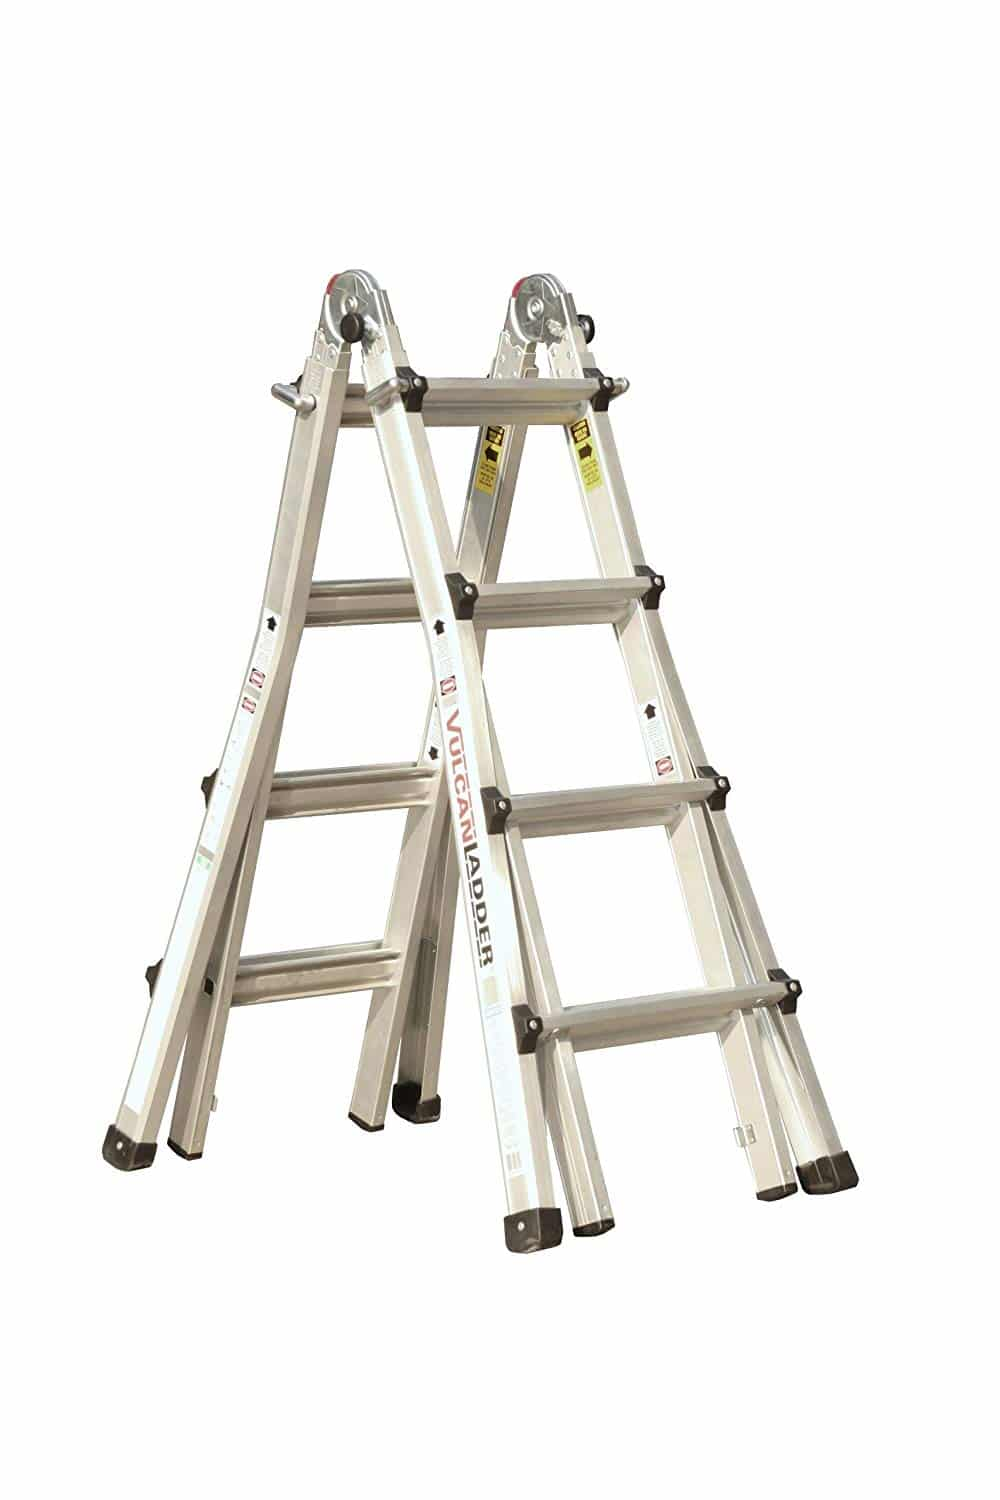 Top 11 Best Folding Ladders In 2020 Reviews Home Amp Kitchen